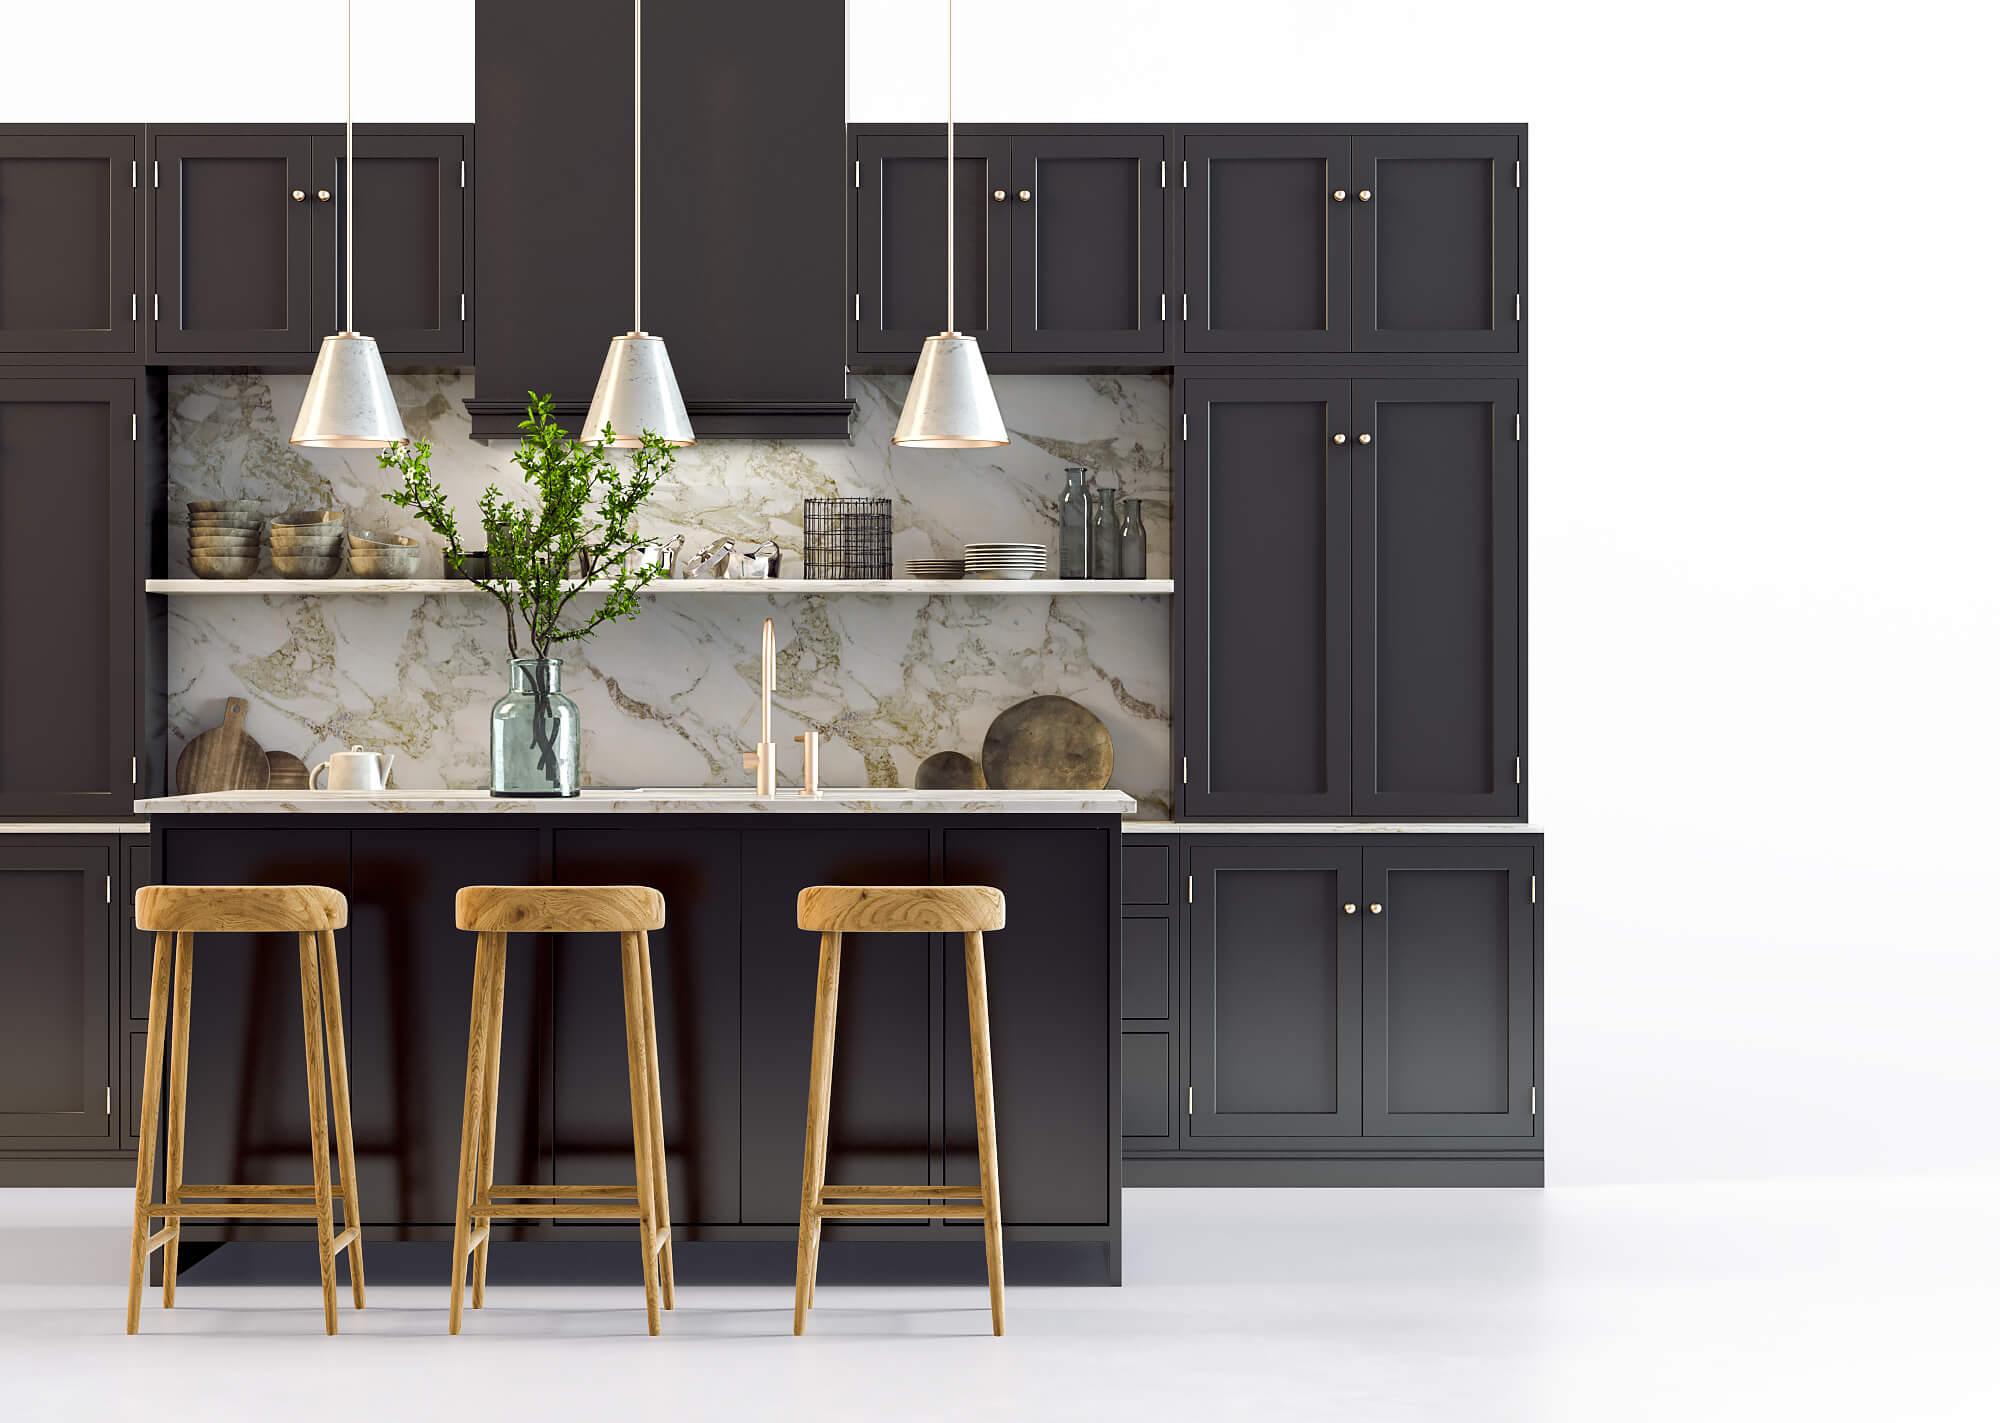 Product CGI of Kitchen Furnishings Created without Photography